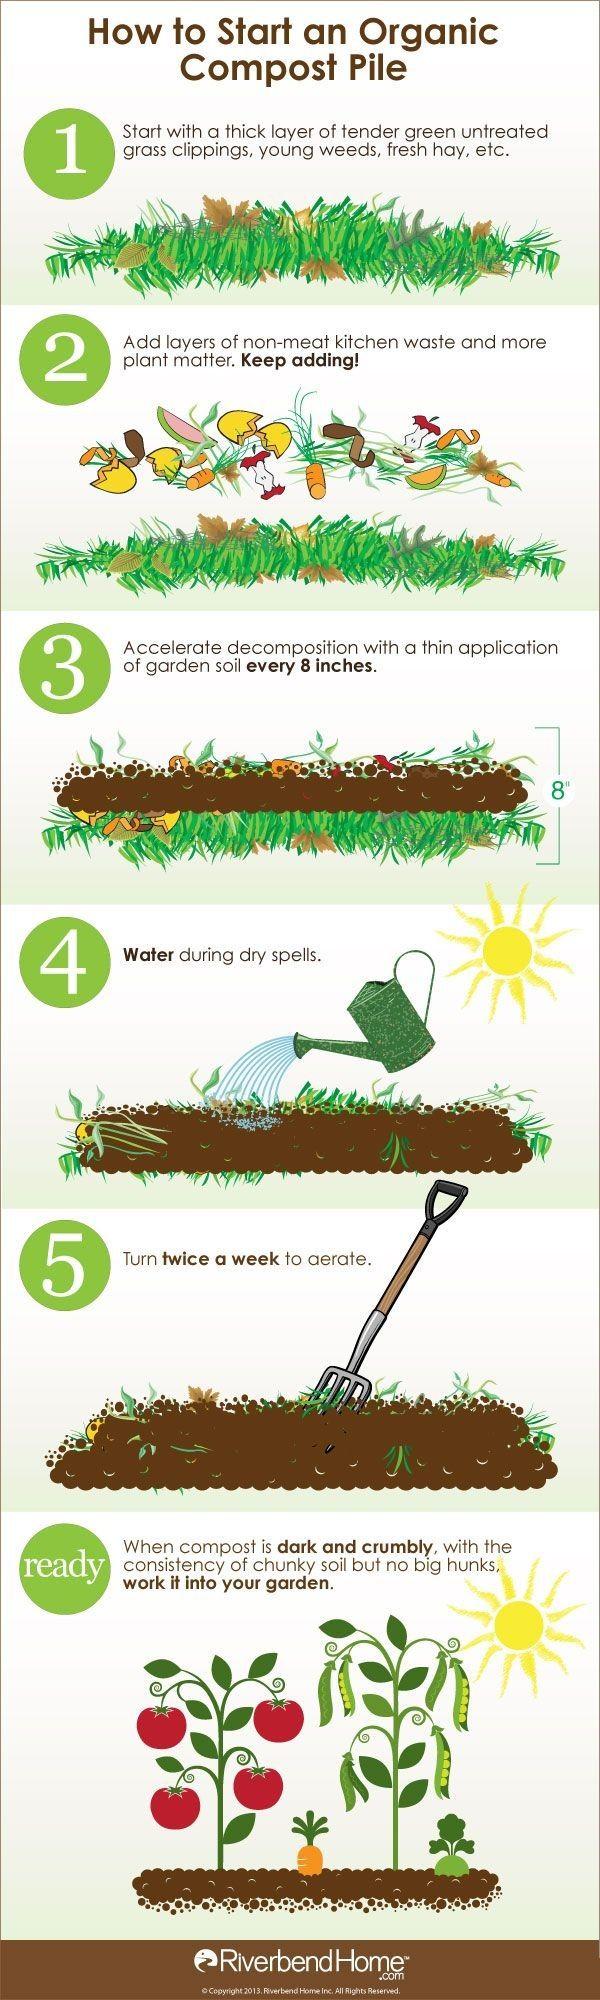 to get you started on composting check out the 5 simple steps on